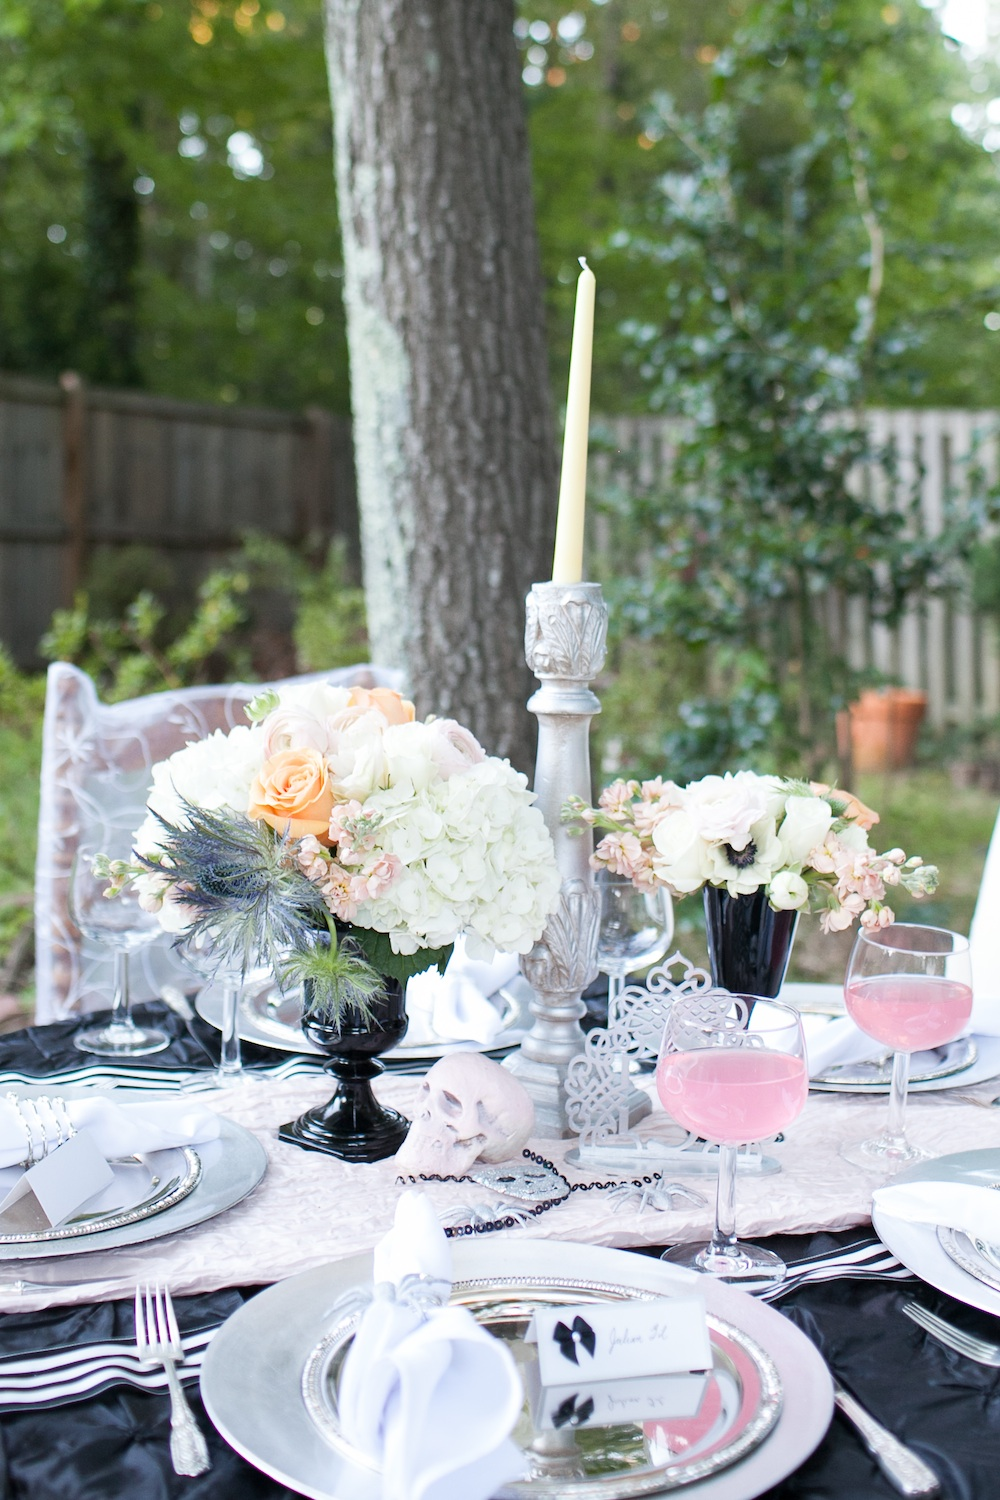 Elegant Halloween Wedding Tablescape in Blush, Black and Tangerine / florals by EightTreeStreet / photo by {a}strid Photography